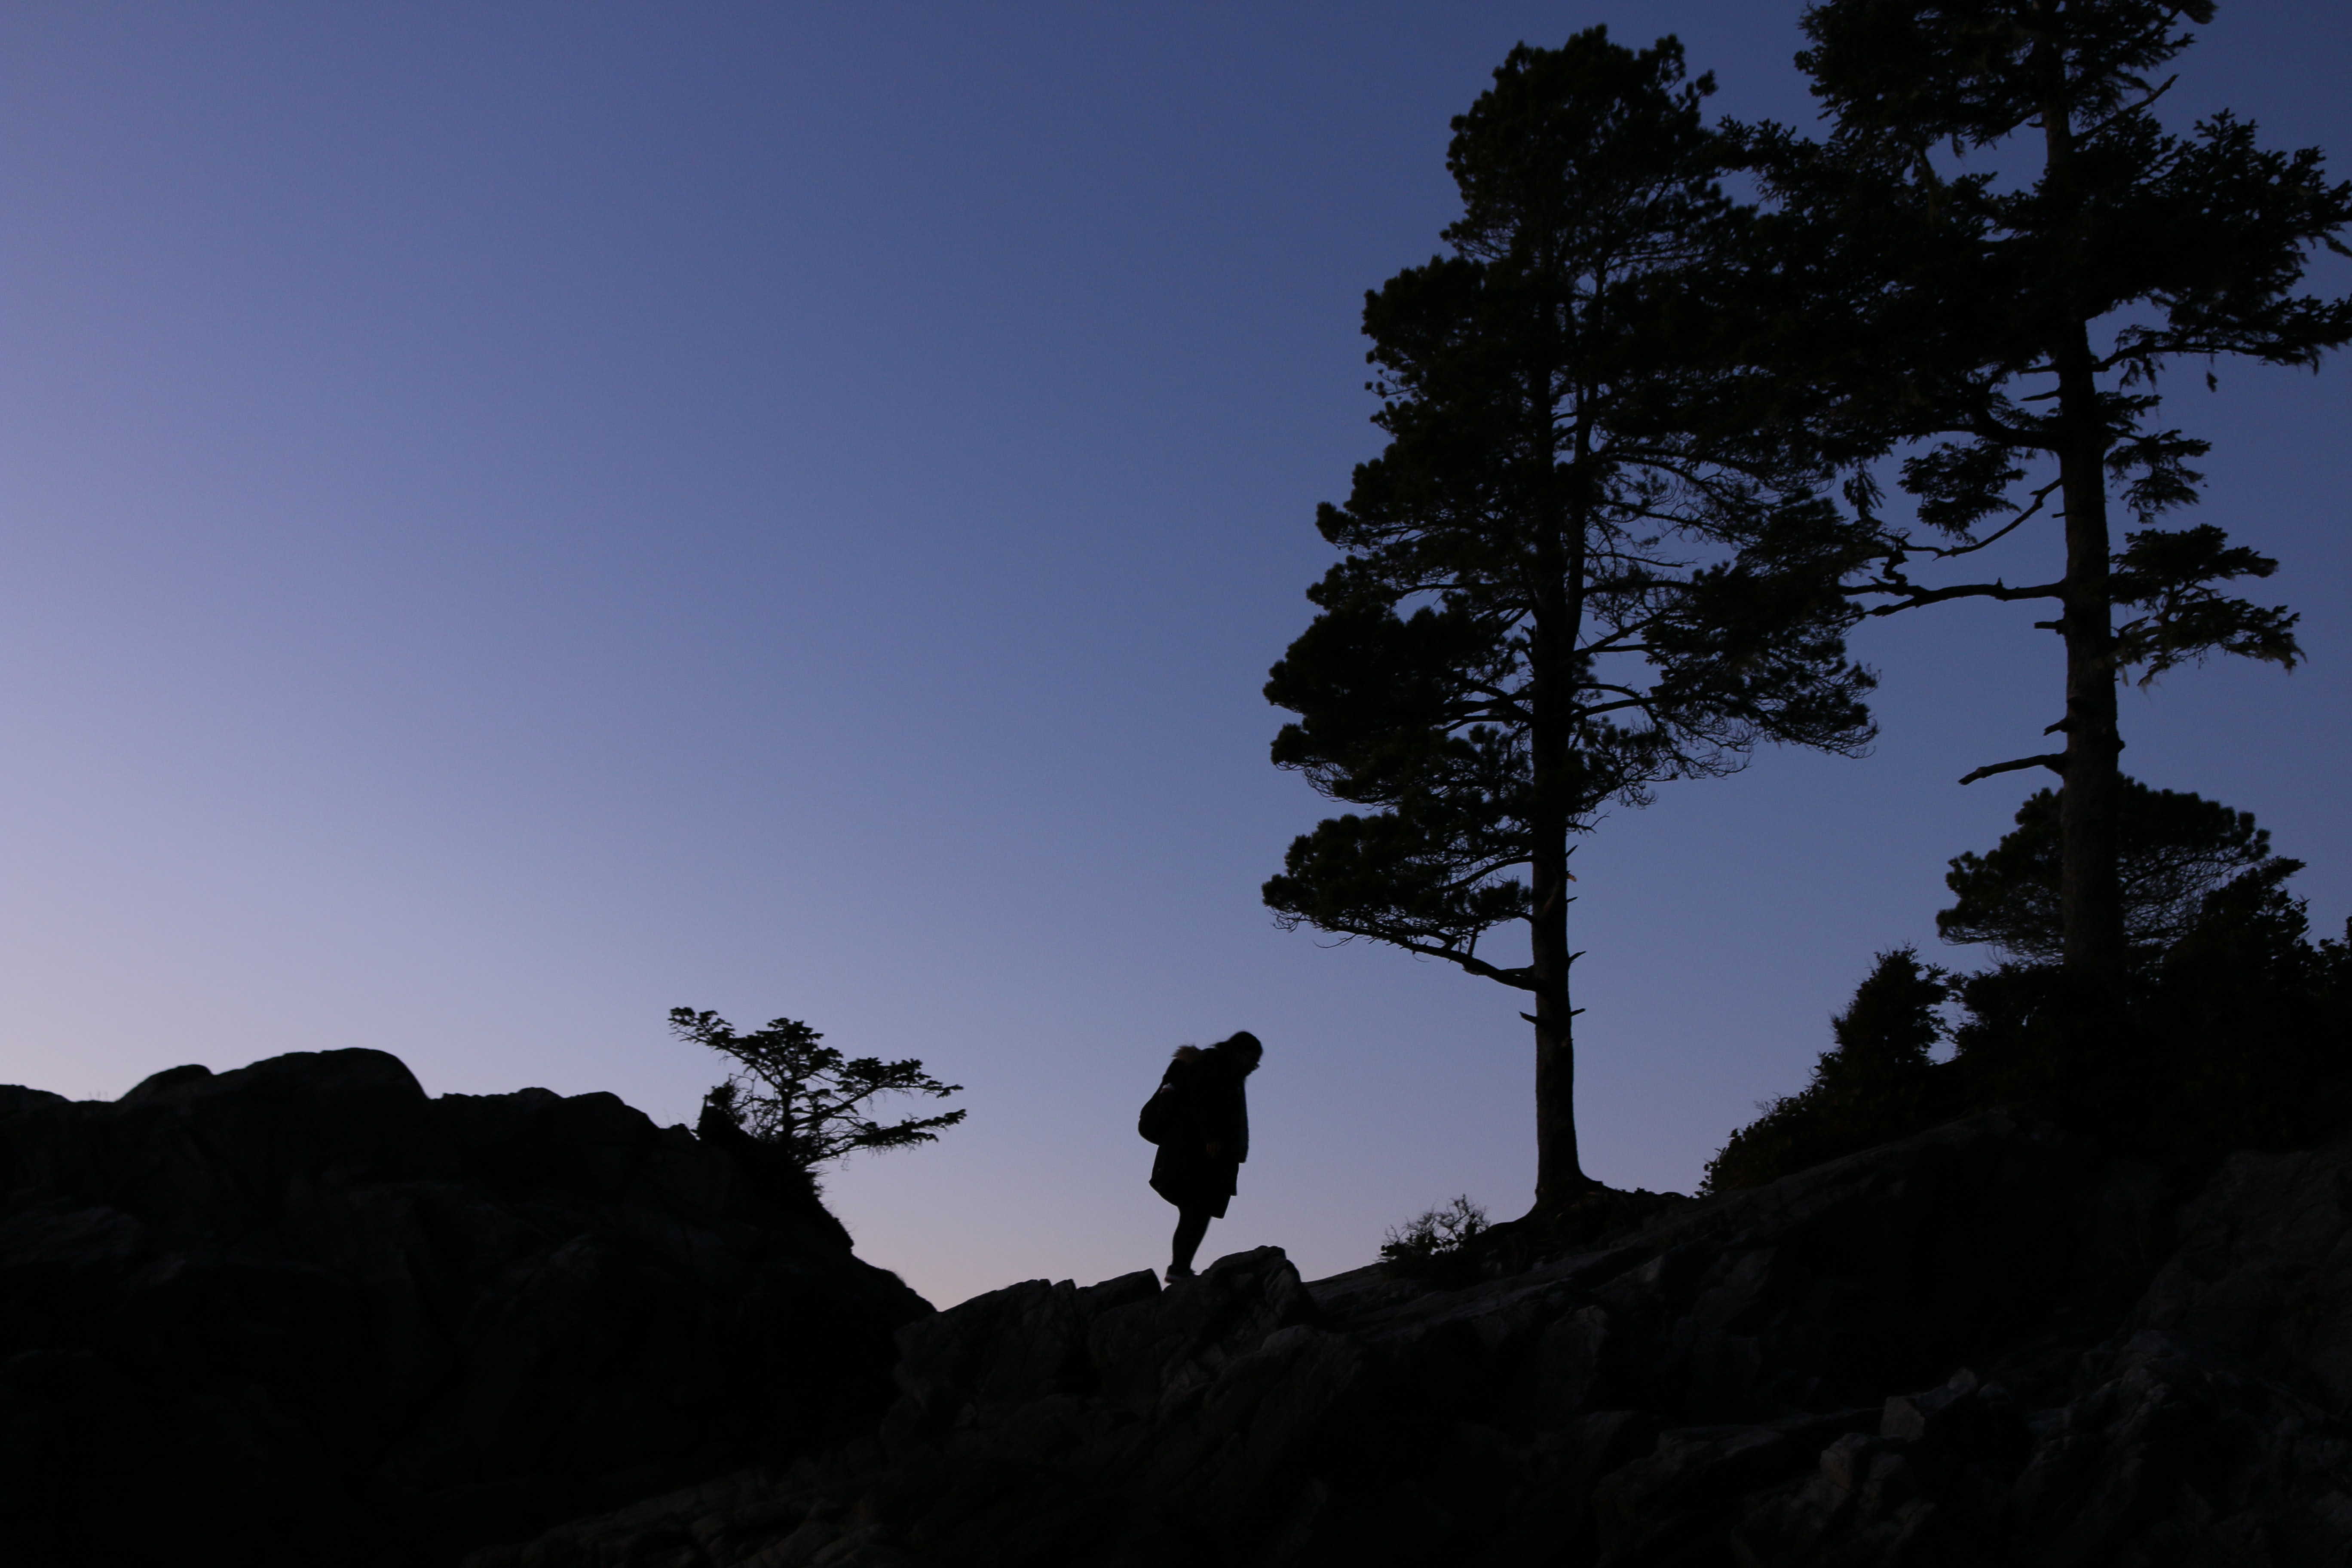 silhouette of person on top of mountain